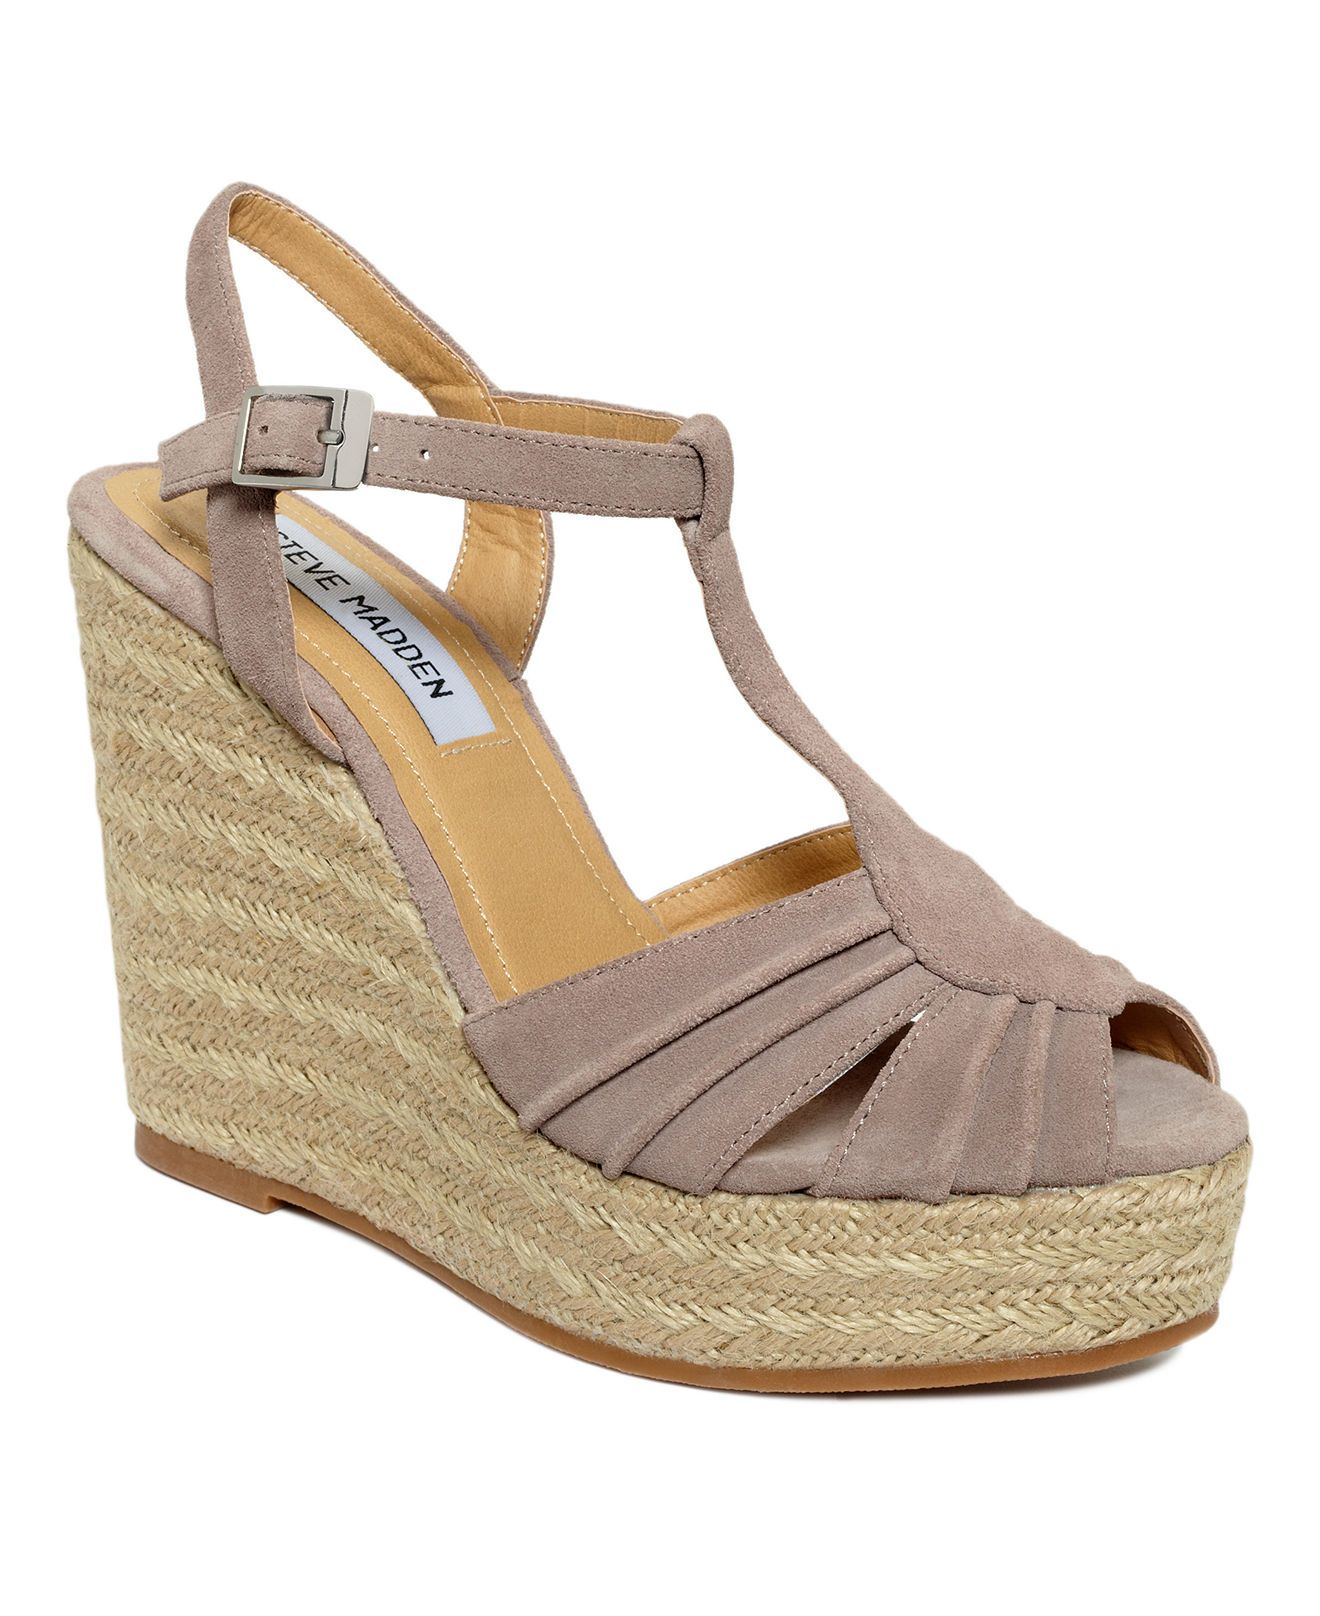 2f5a180ef2de Steve Madden Women s Mammbow Wedge Sandals - Sandals - Shoes - Macy s